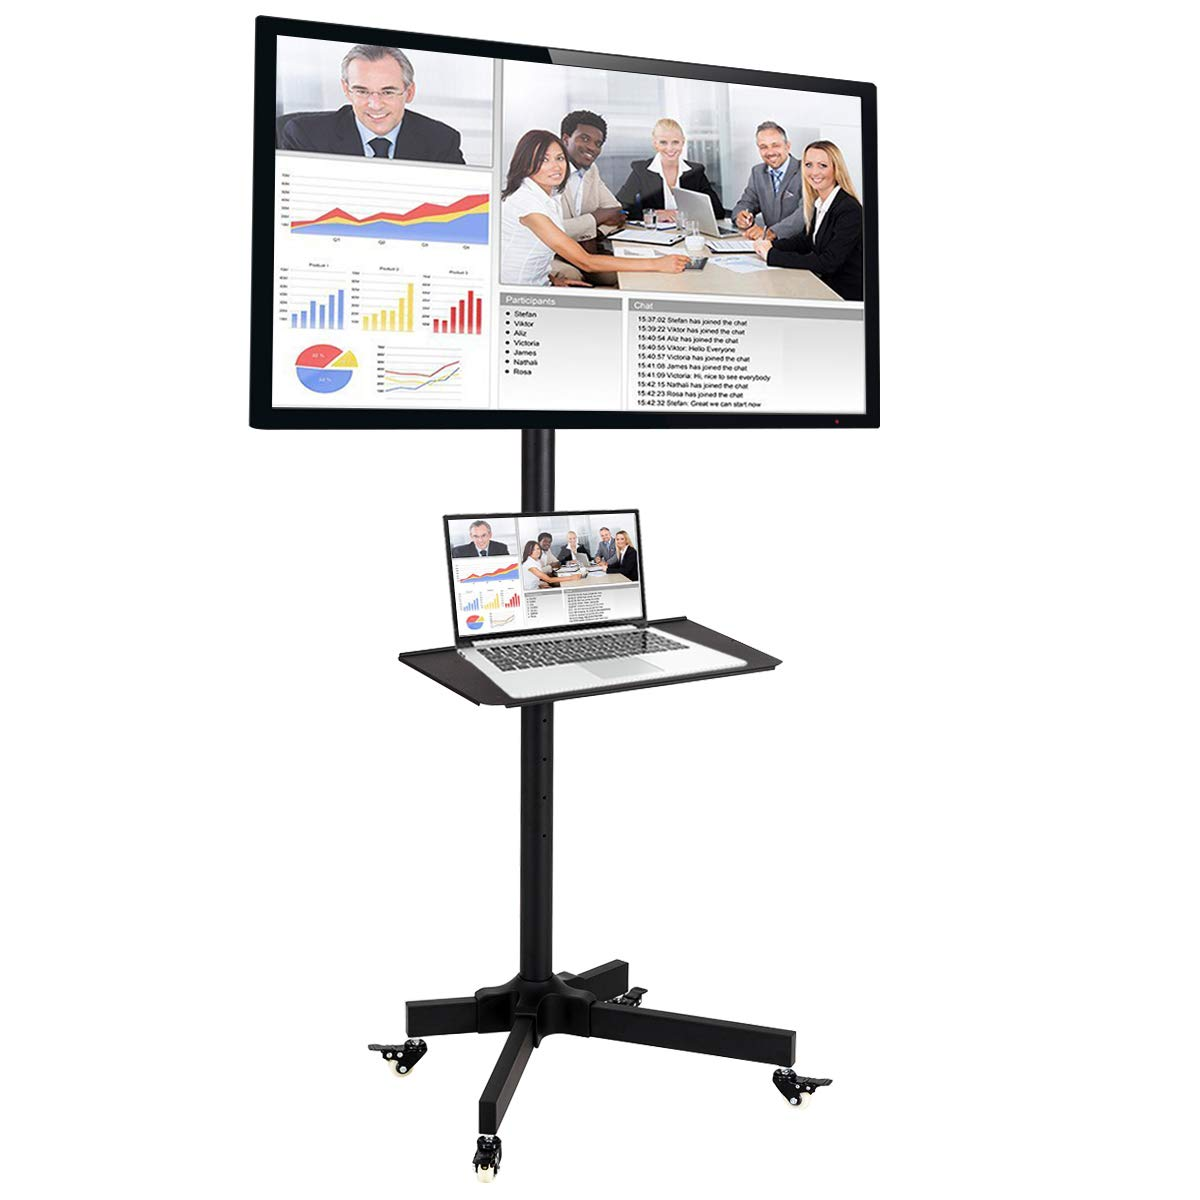 Toolsempire Height Adjustable Mobile TV Cart Rolling TV Stand for 19'' to 37'' Universal LCD LED Plasma Flat Panel Screens Within 200x200mm up to 44lbs with Shelf & Wheels